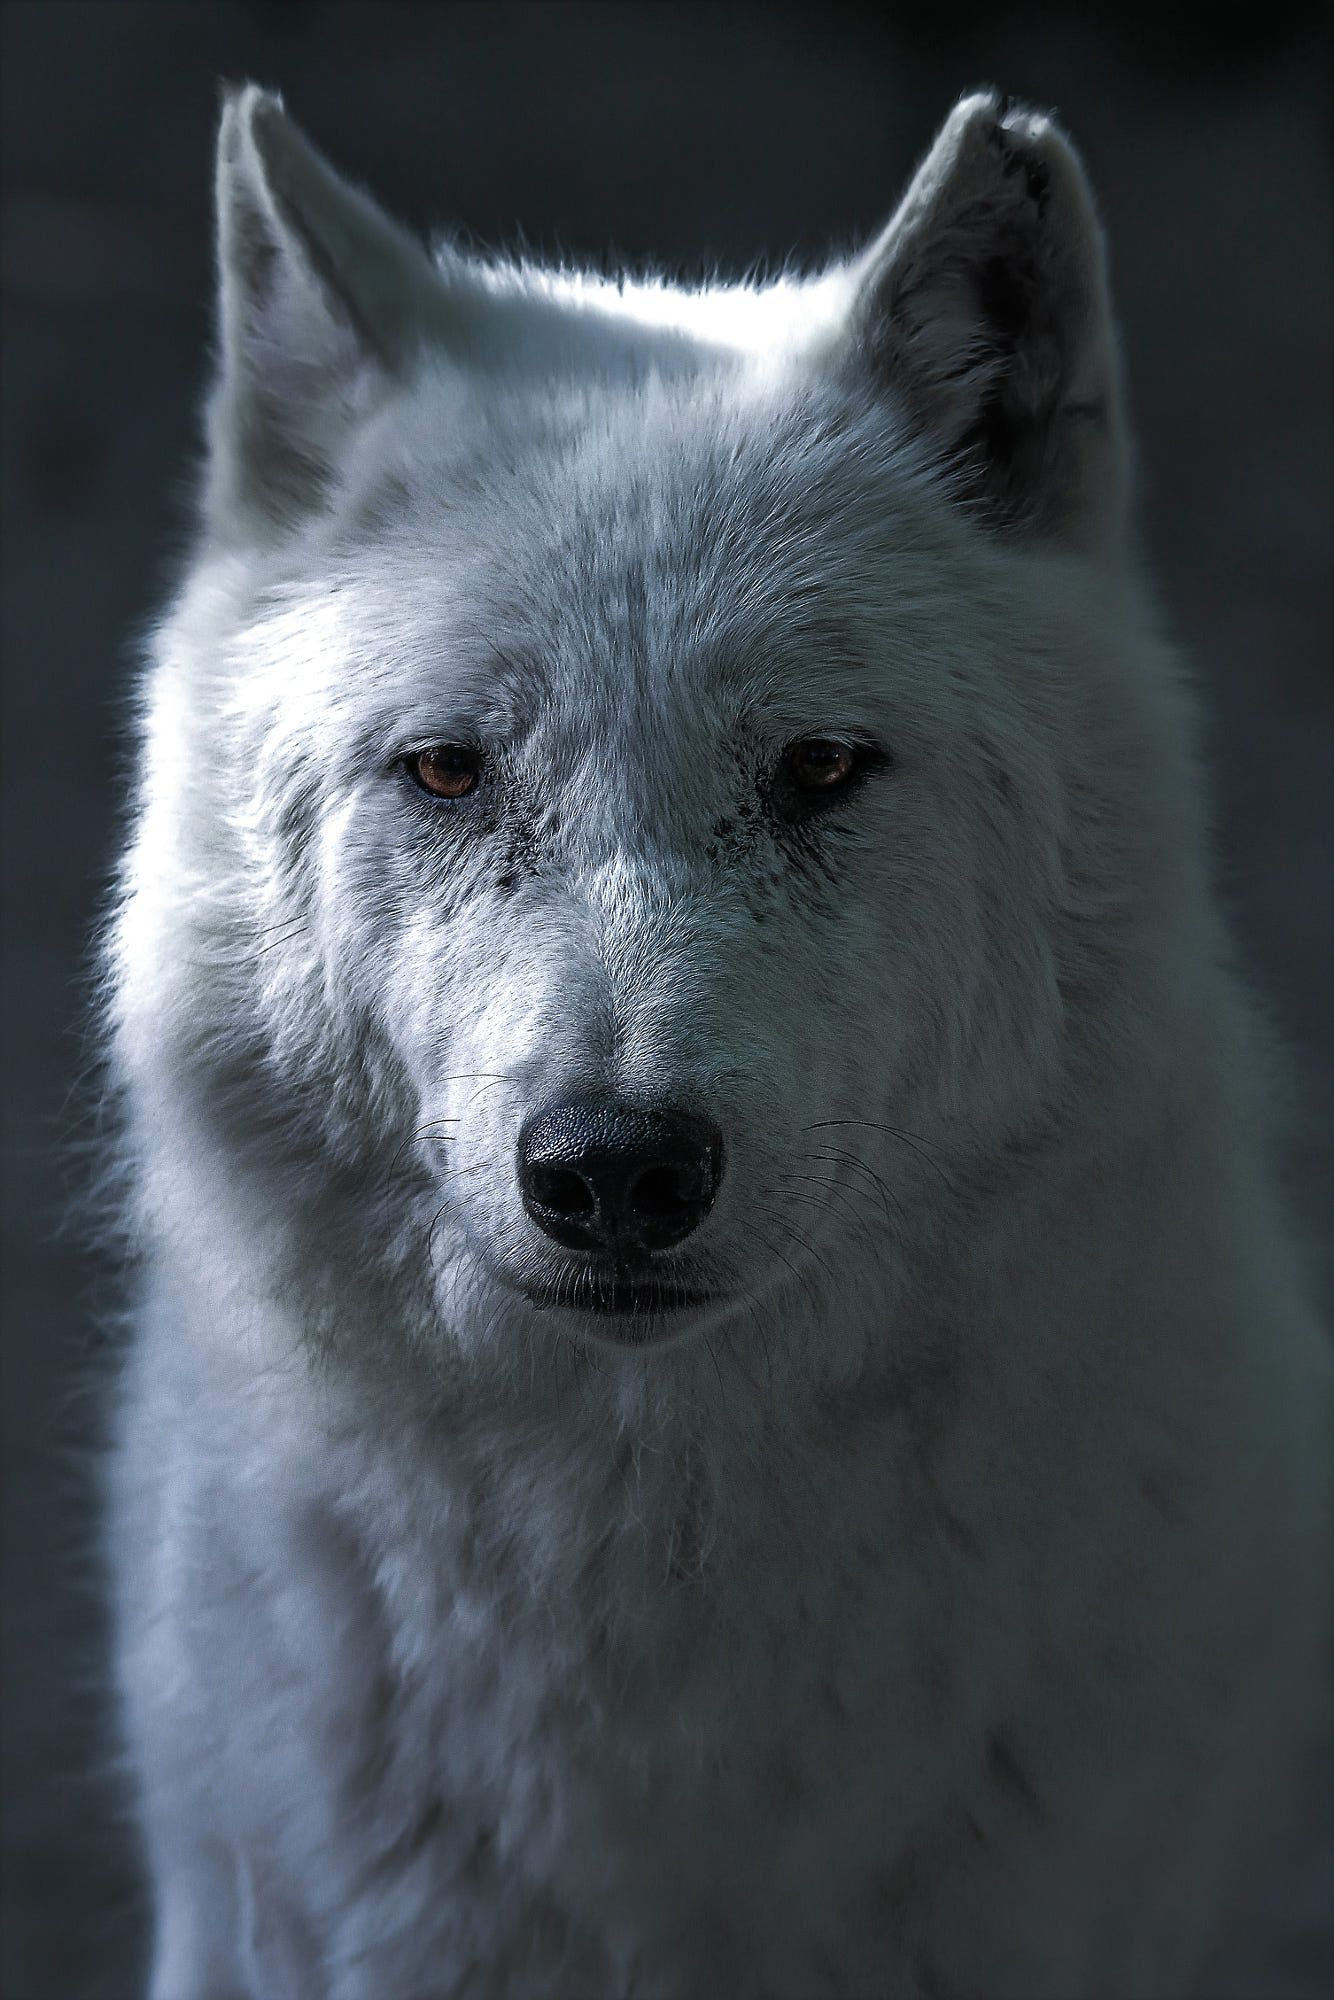 Photo taken last weekend i present snow the white wolf